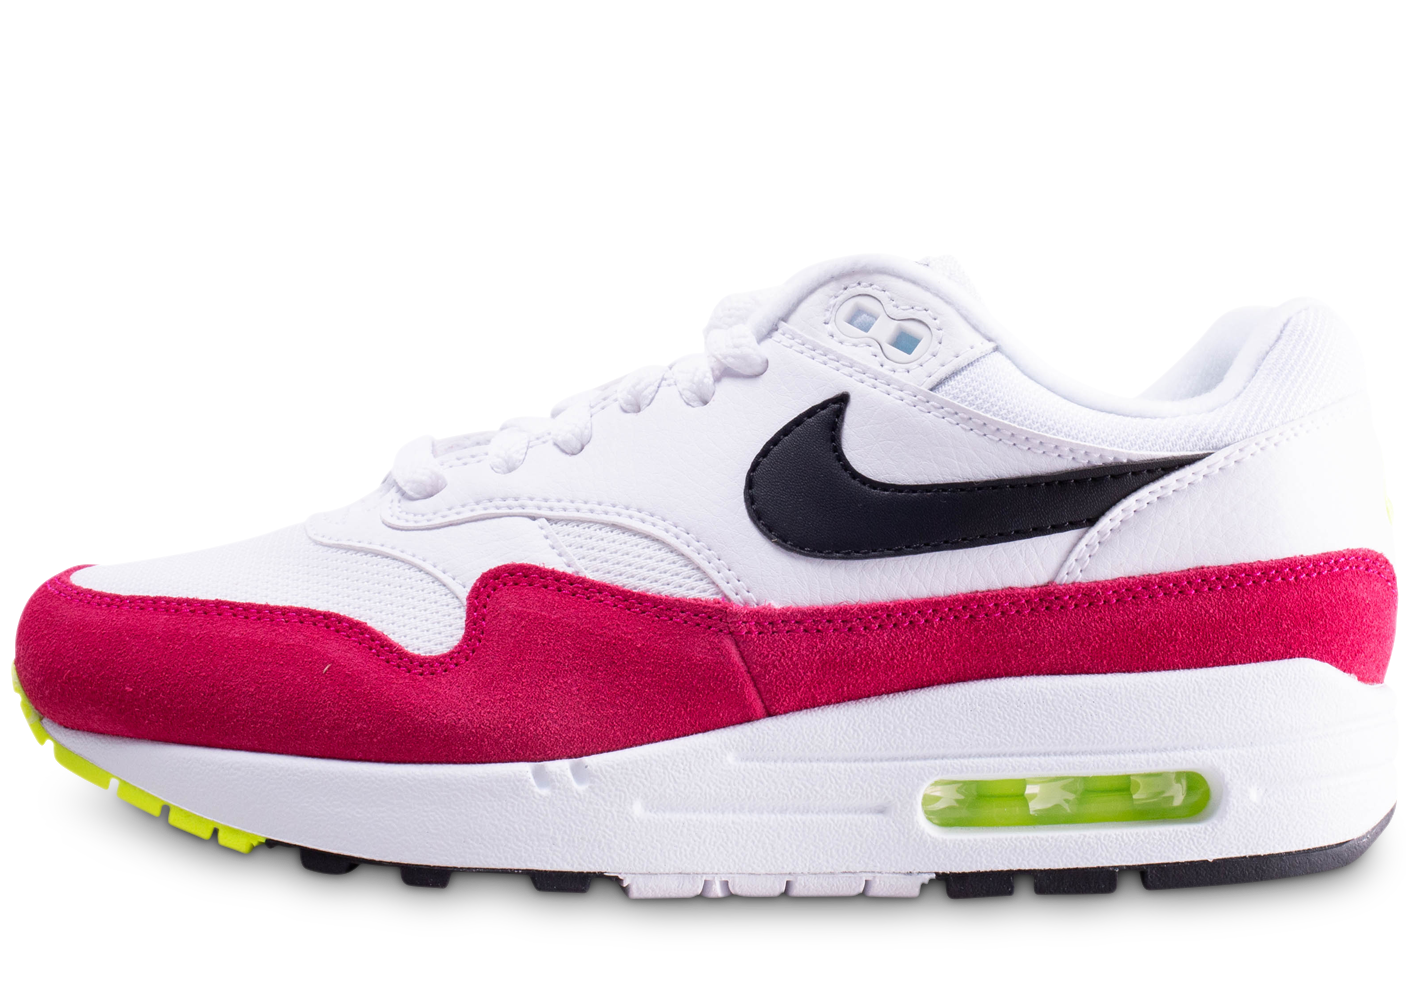 Nike homme air max 1 blanche et rose baskets